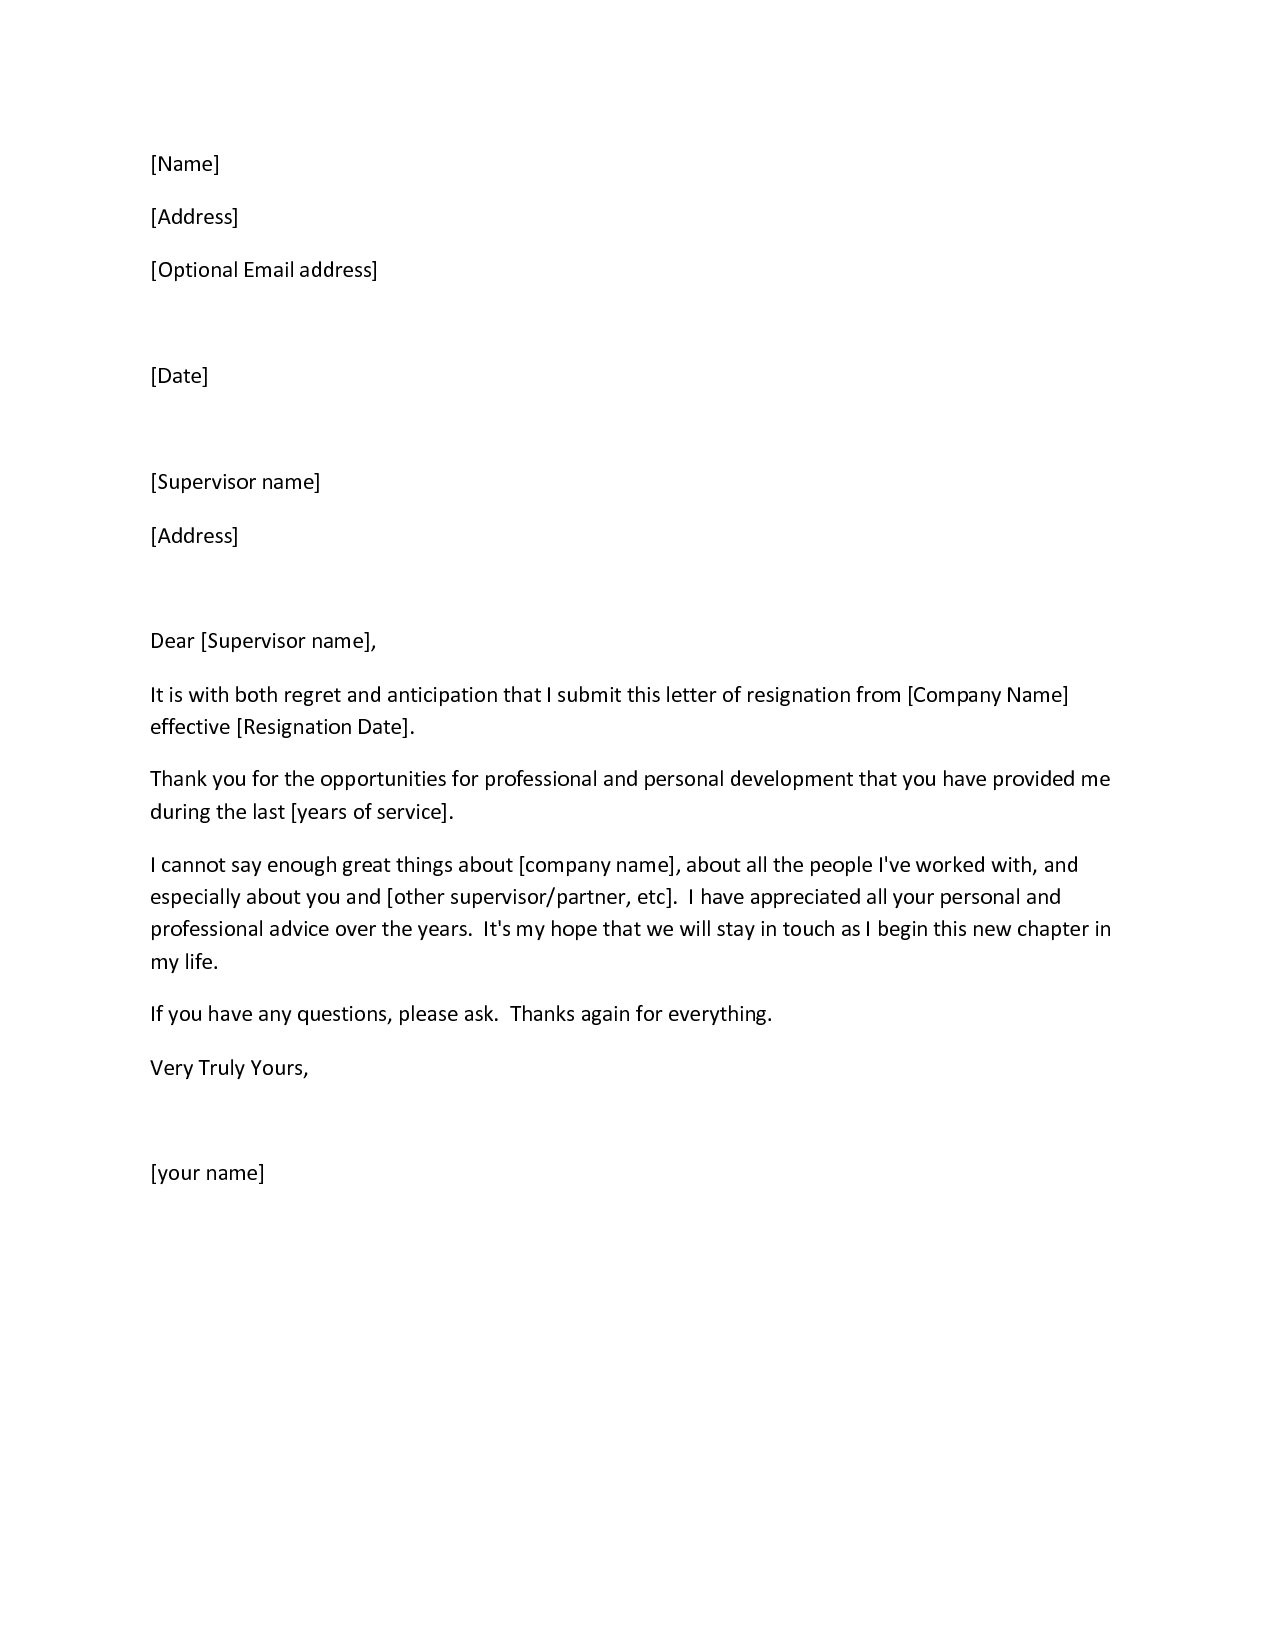 17 best images about resignation letter letter 17 best images about resignation letter letter sample steve jobs and teacher jobs